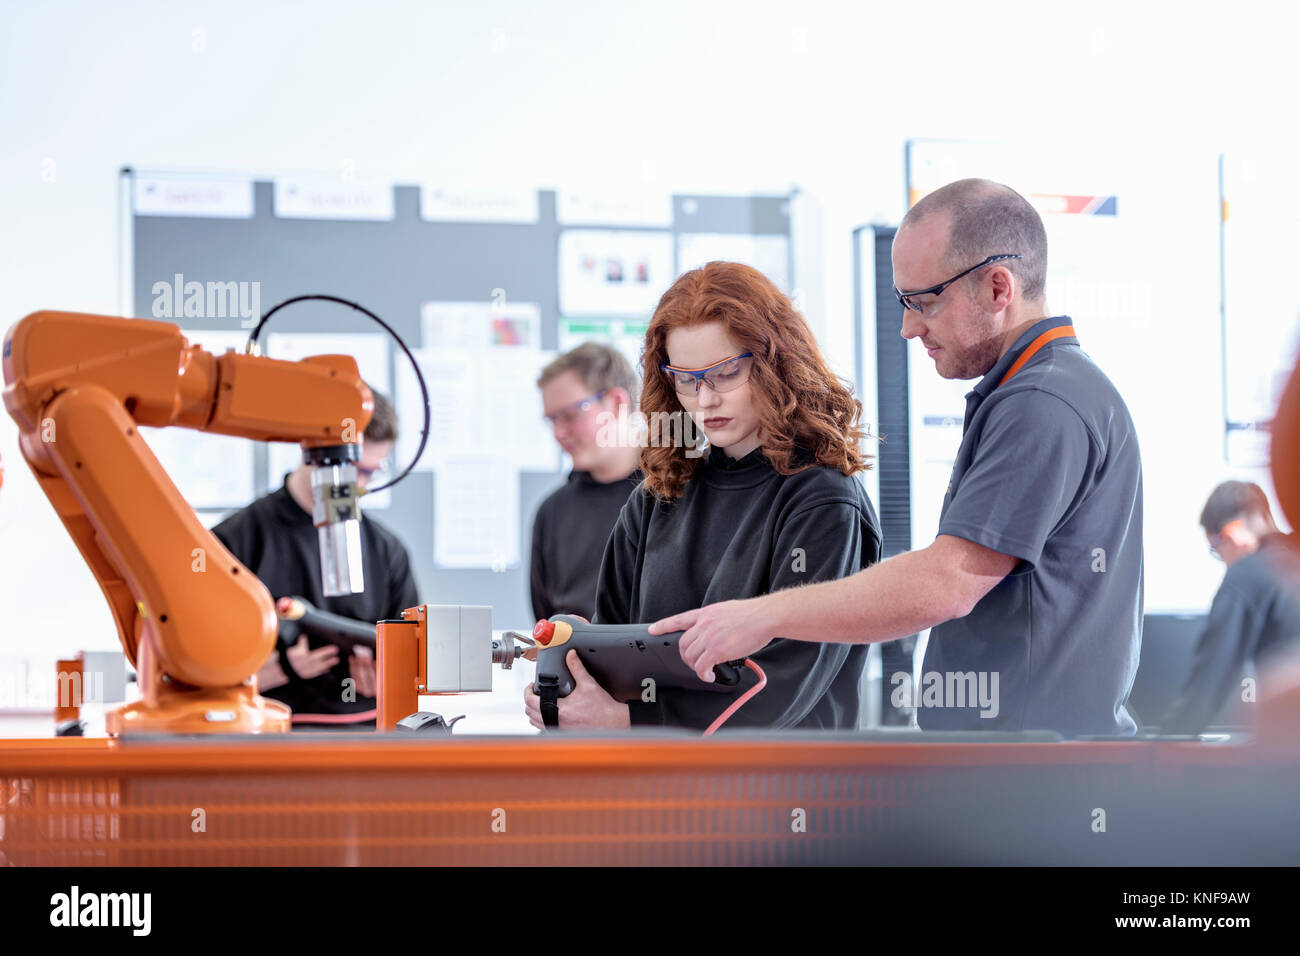 Tutor with robotics apprentices using test industrial robots in robotics facility - Stock Image